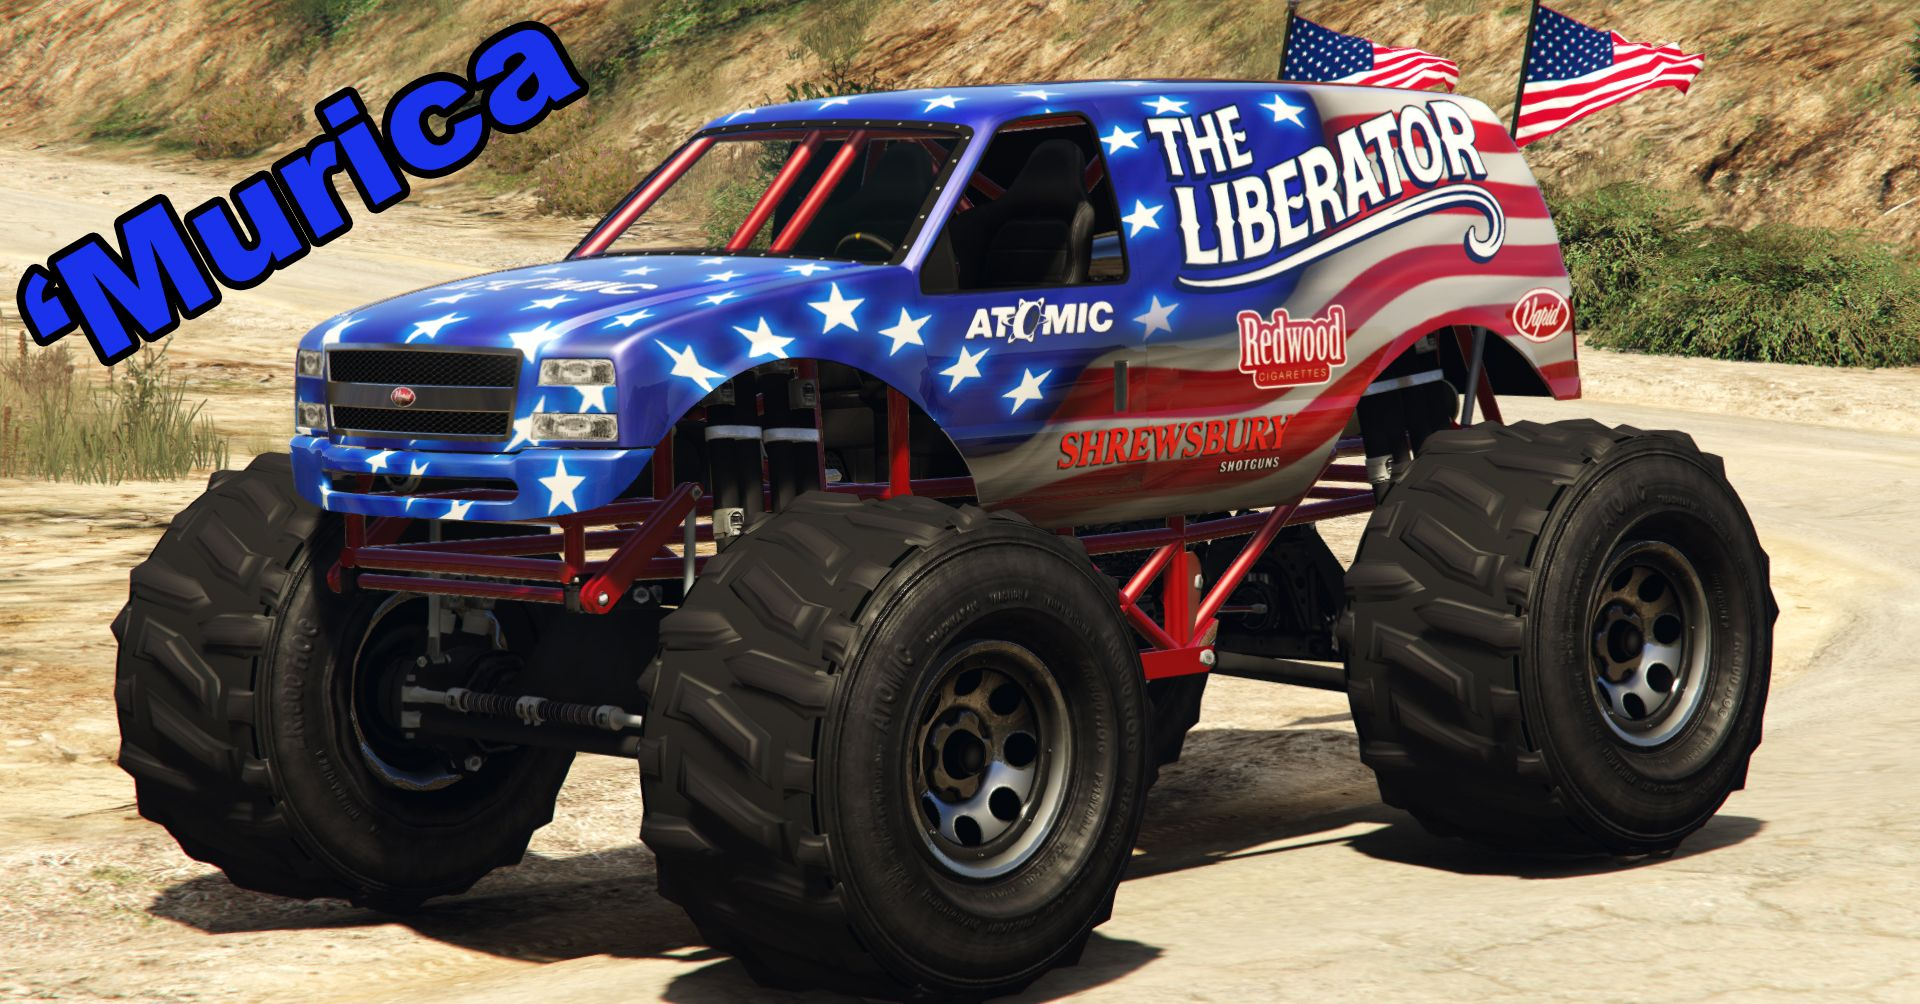 20 Of The Strangest Cars People Actually Saw In Grand Theft Auto